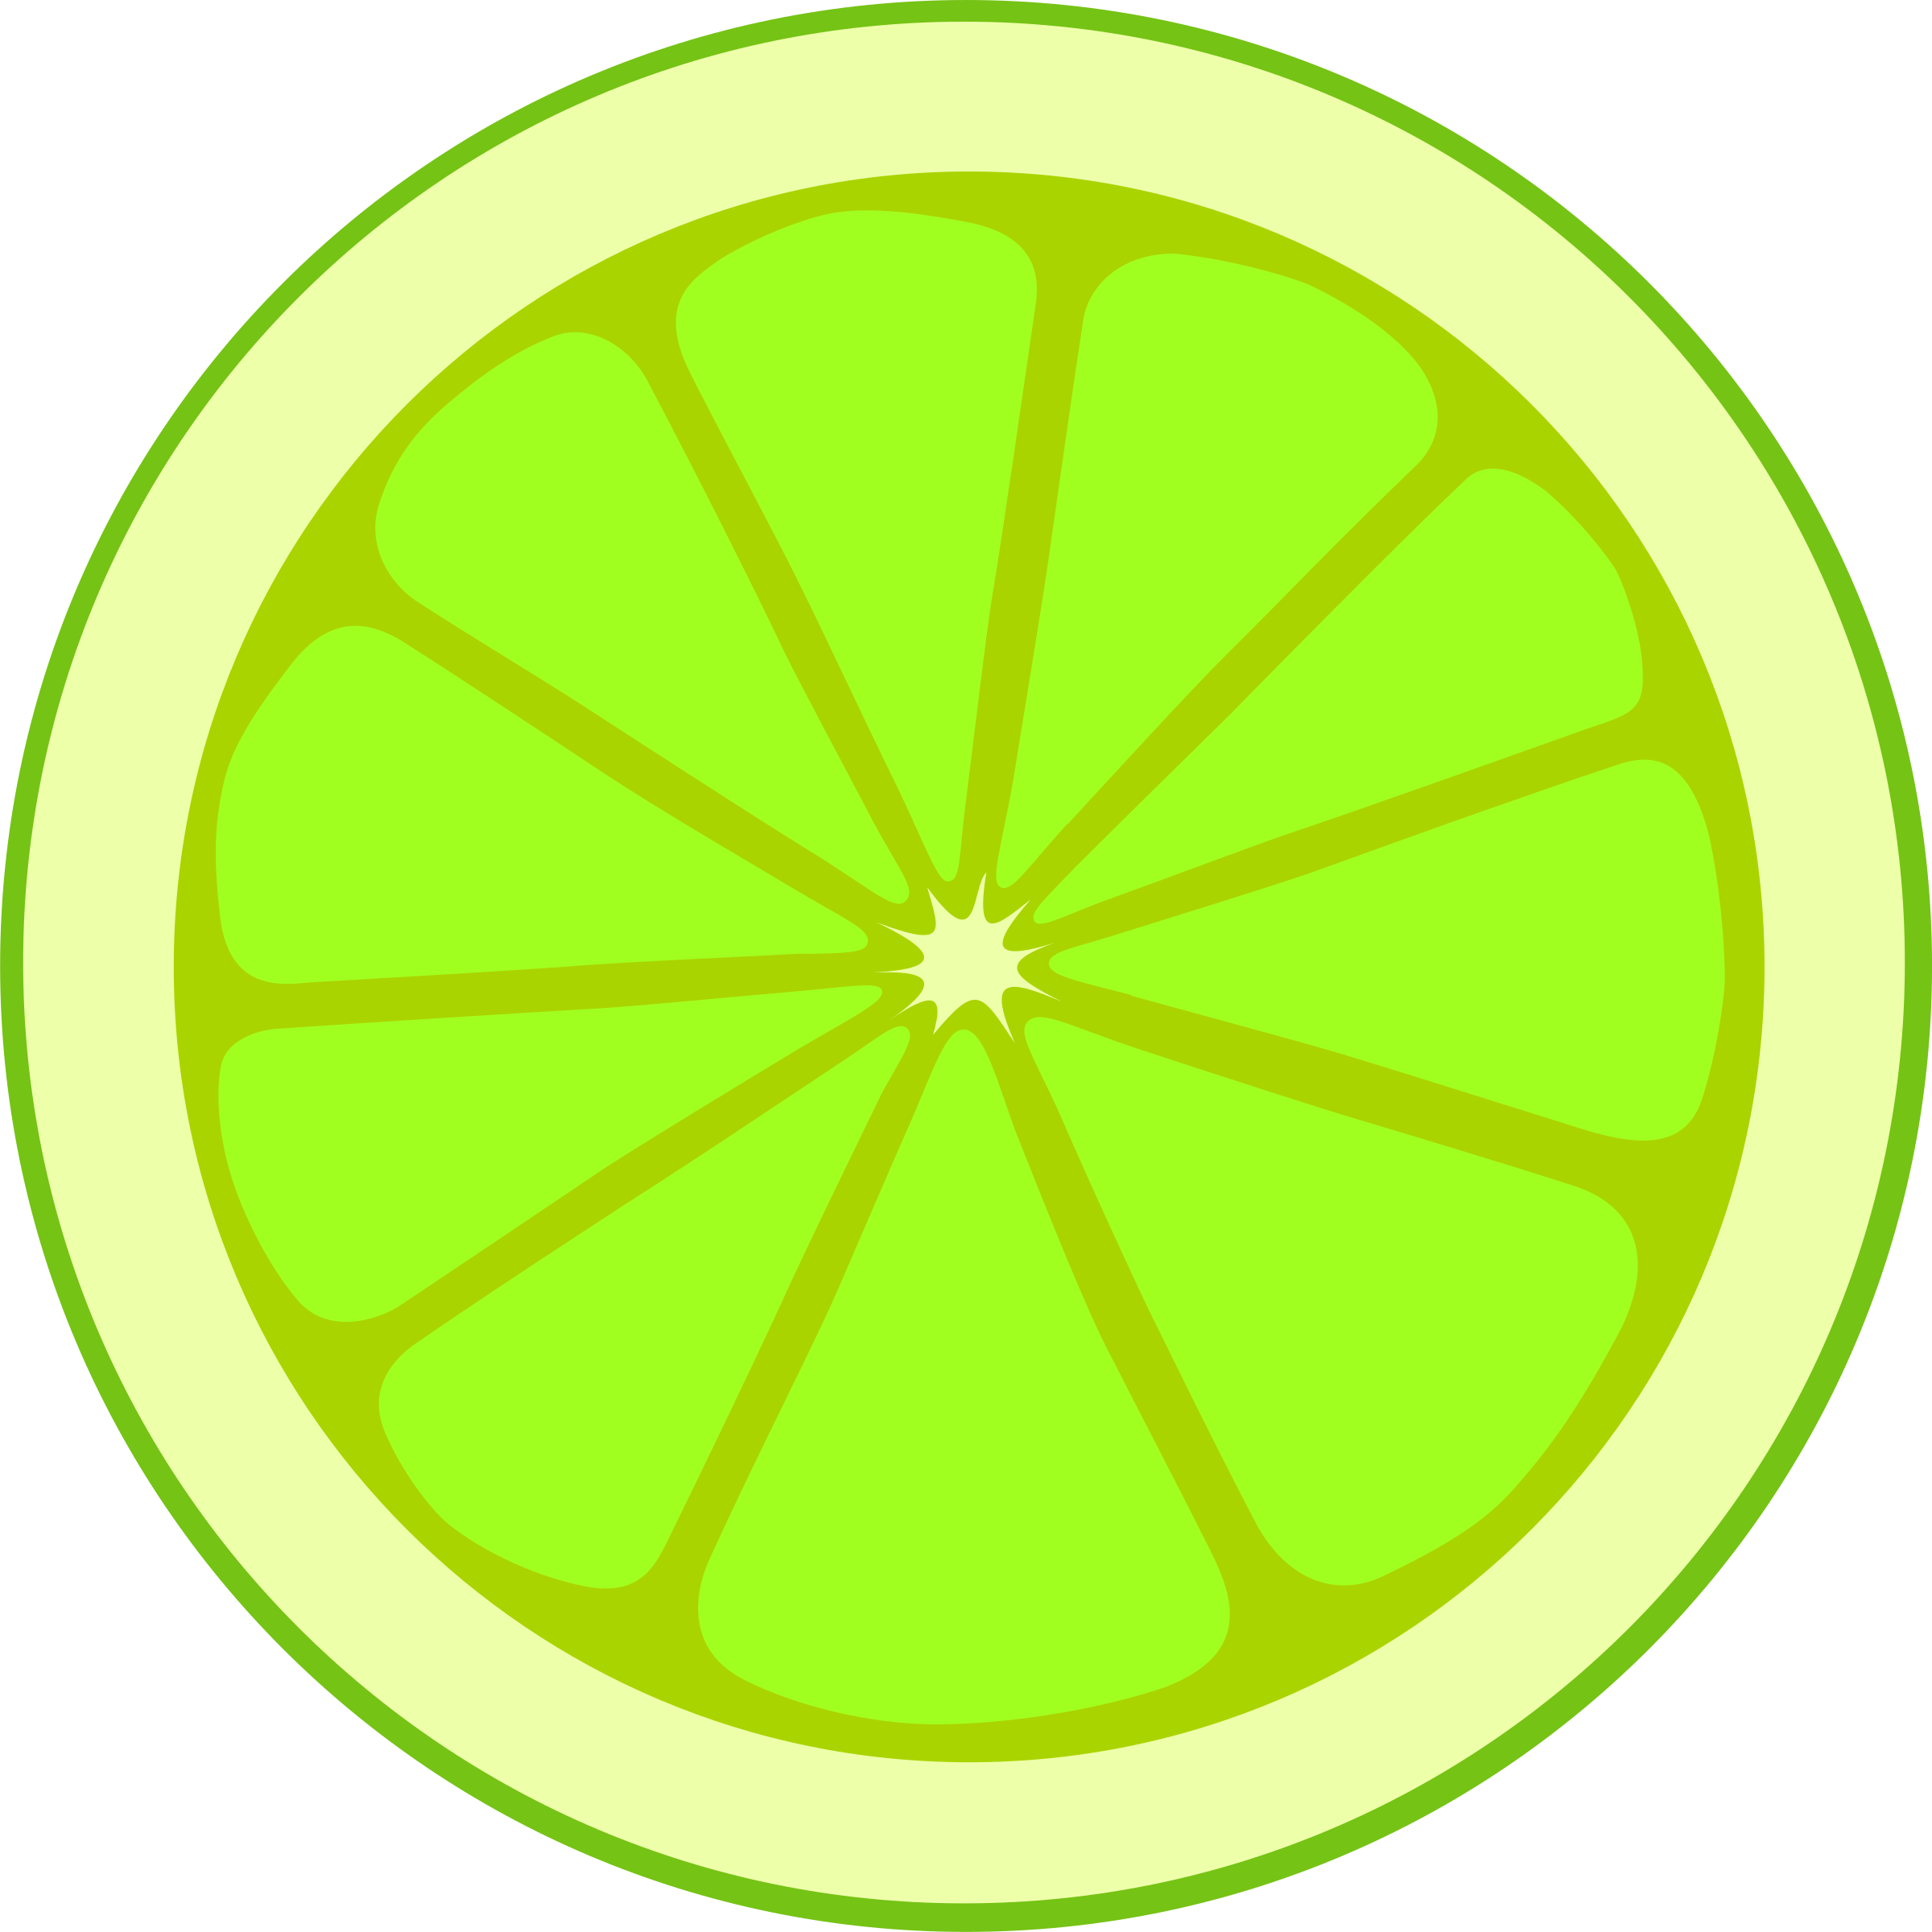 Simple lime section by anarres